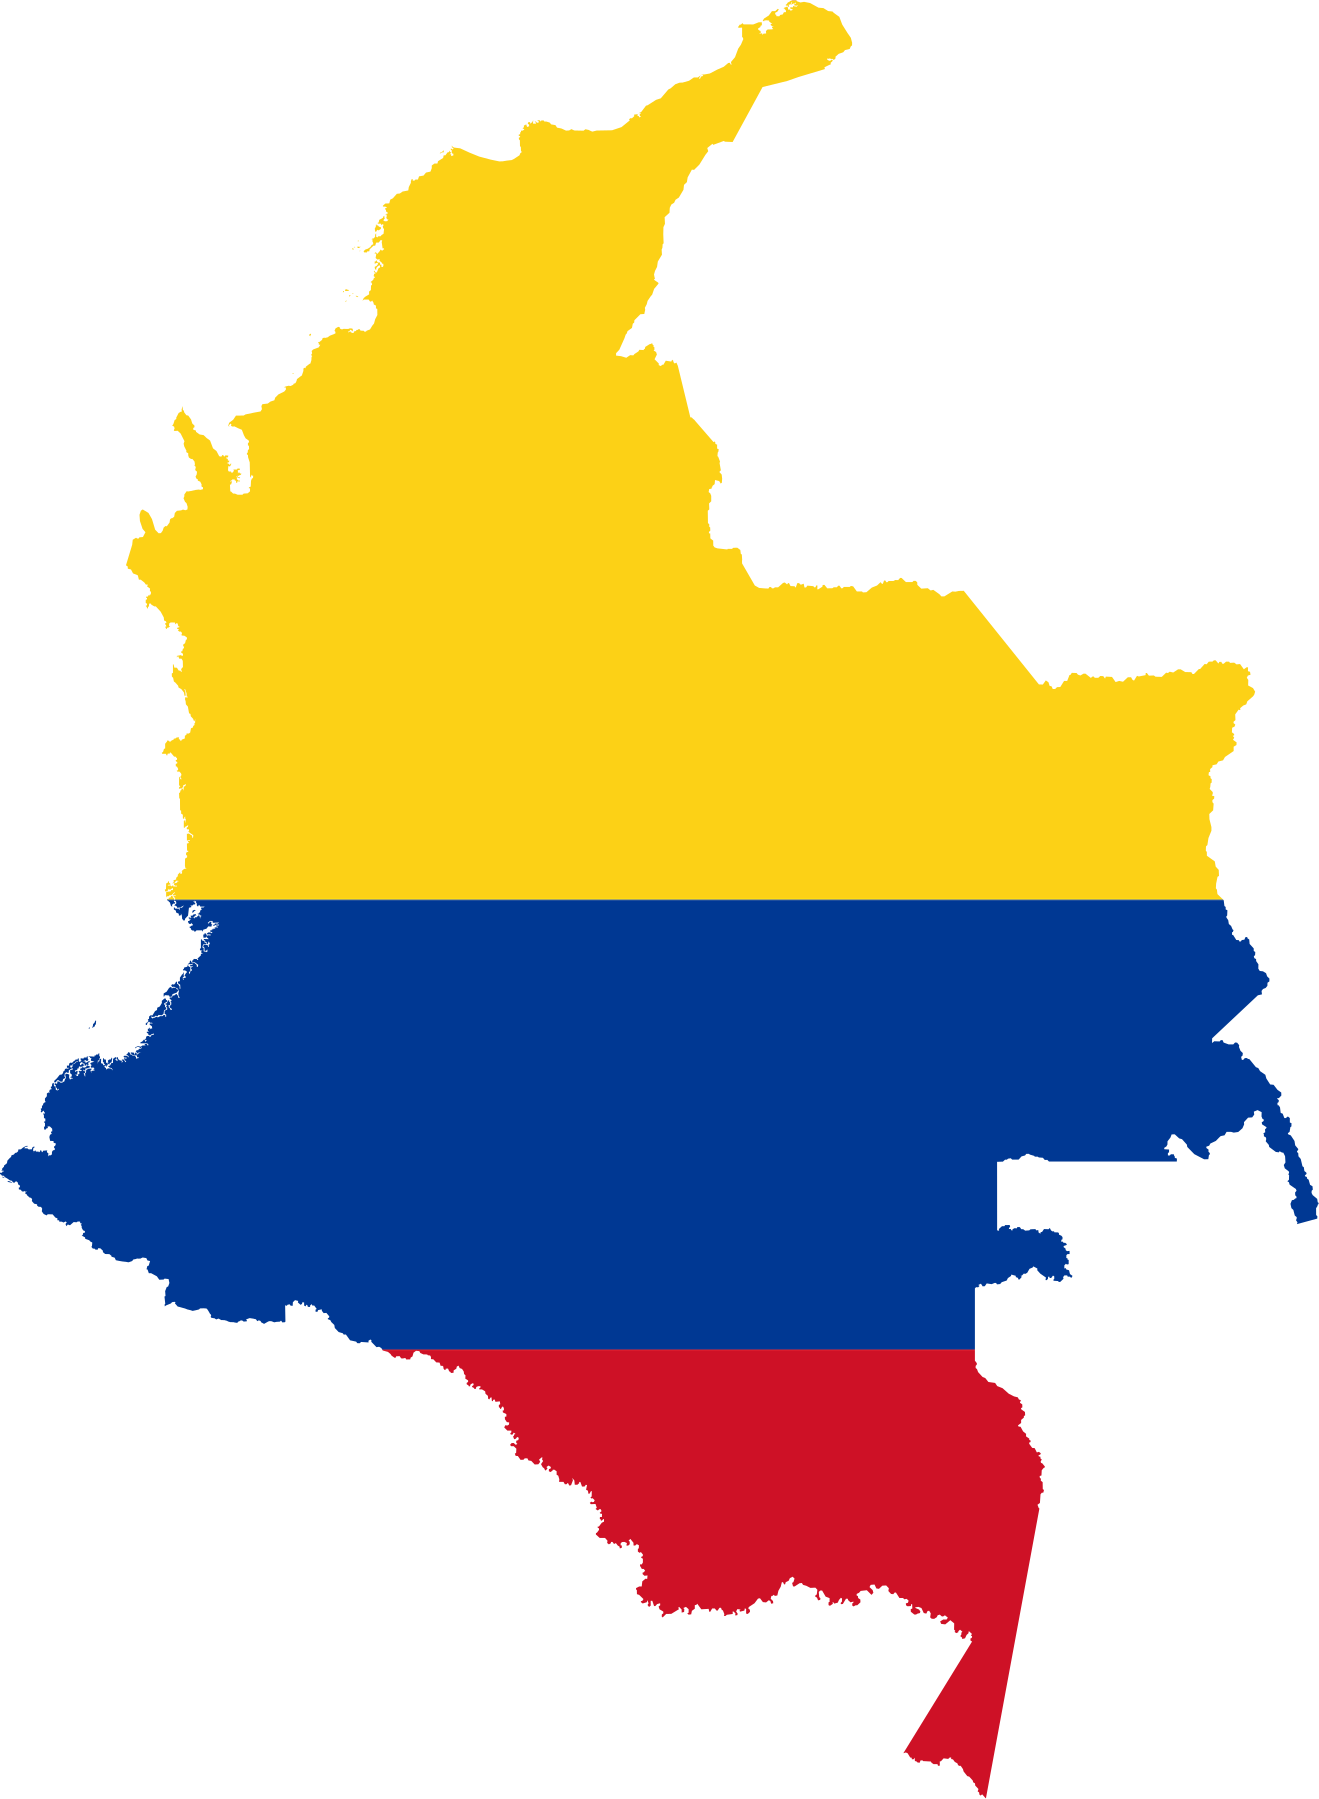 Flag Of Colombia Png - File:Flag-map of Colombia.svg - Wikimedia Commons